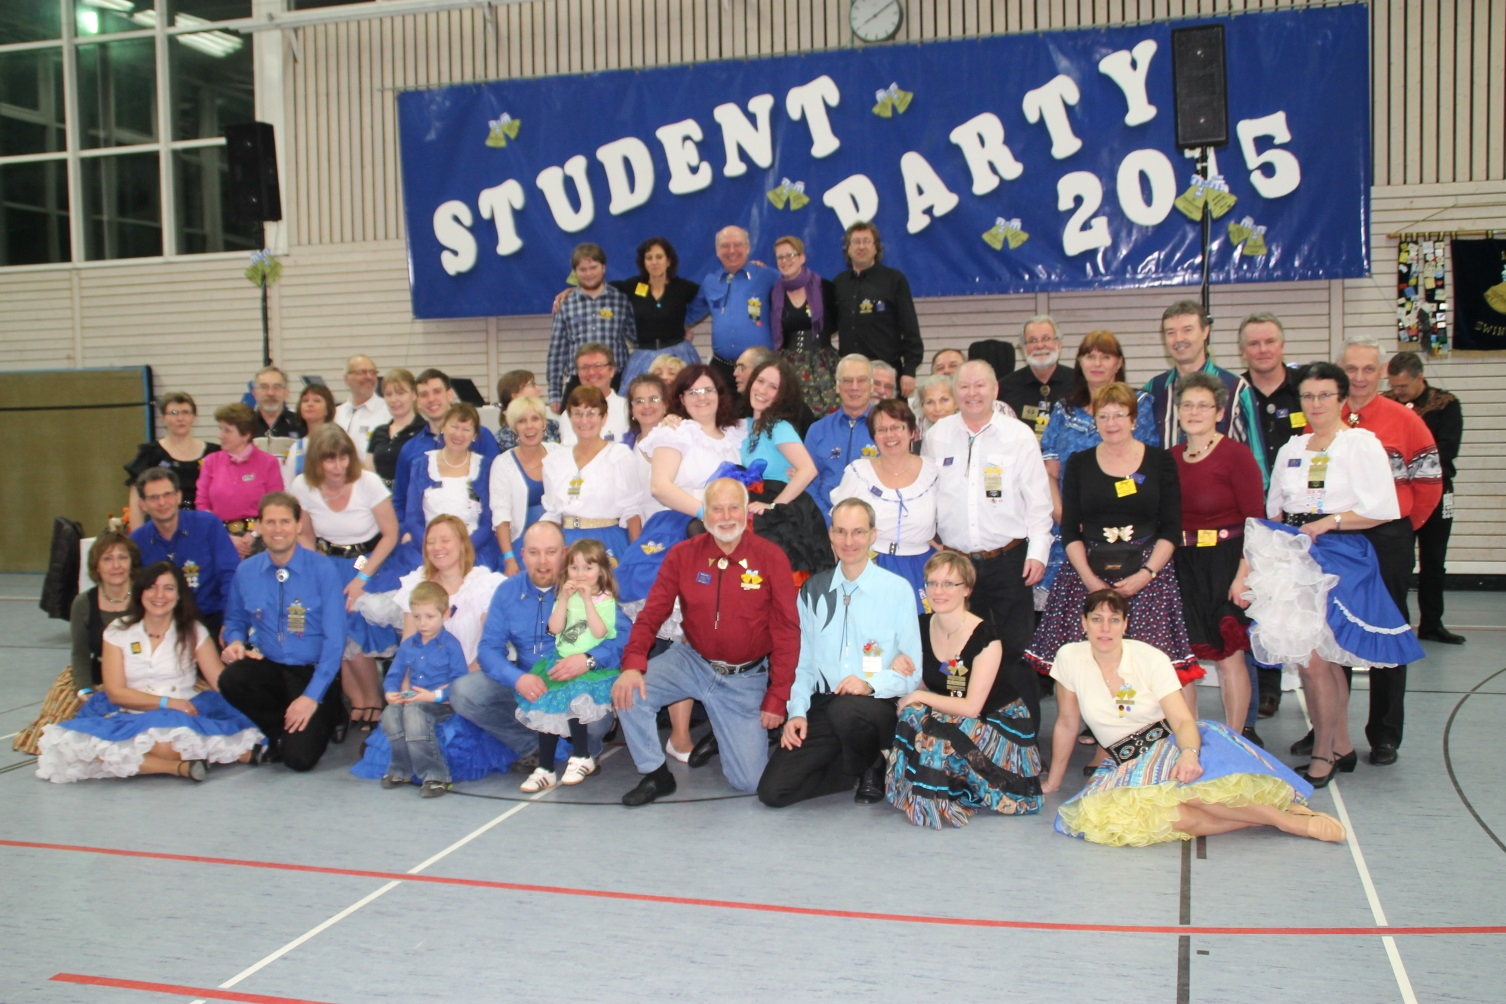 2015-student-party-image6